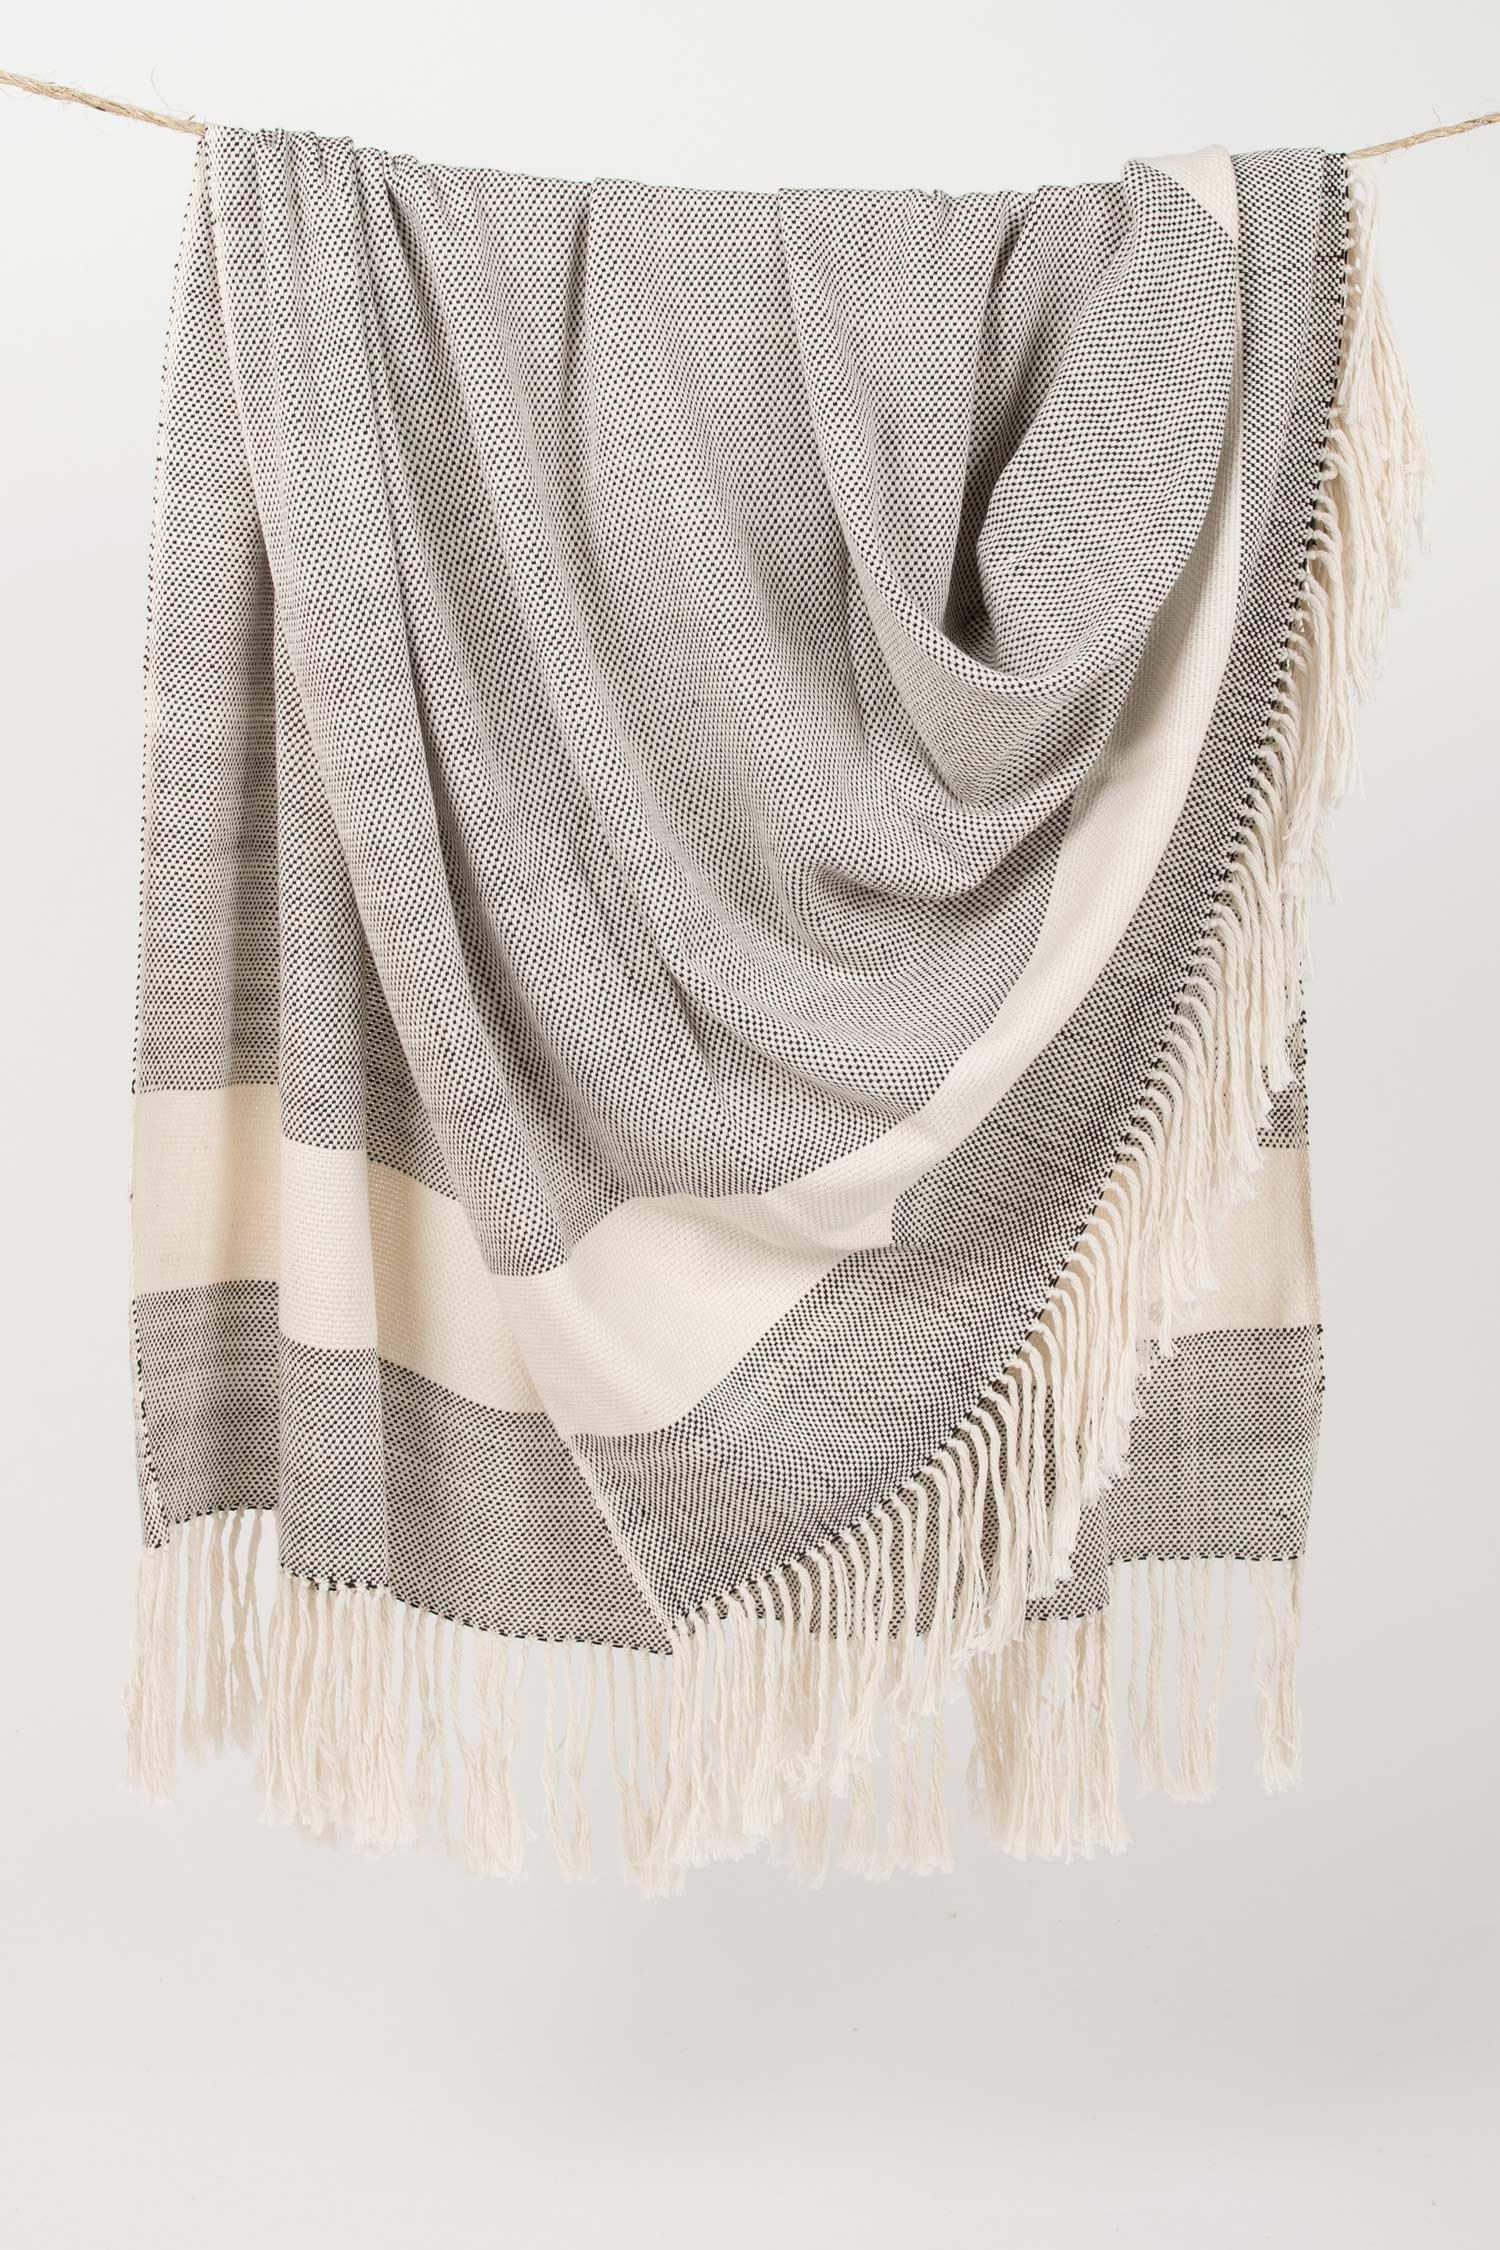 Hand Woven Blanket | White and Black Organic Cotton Blanket | Fair Trade